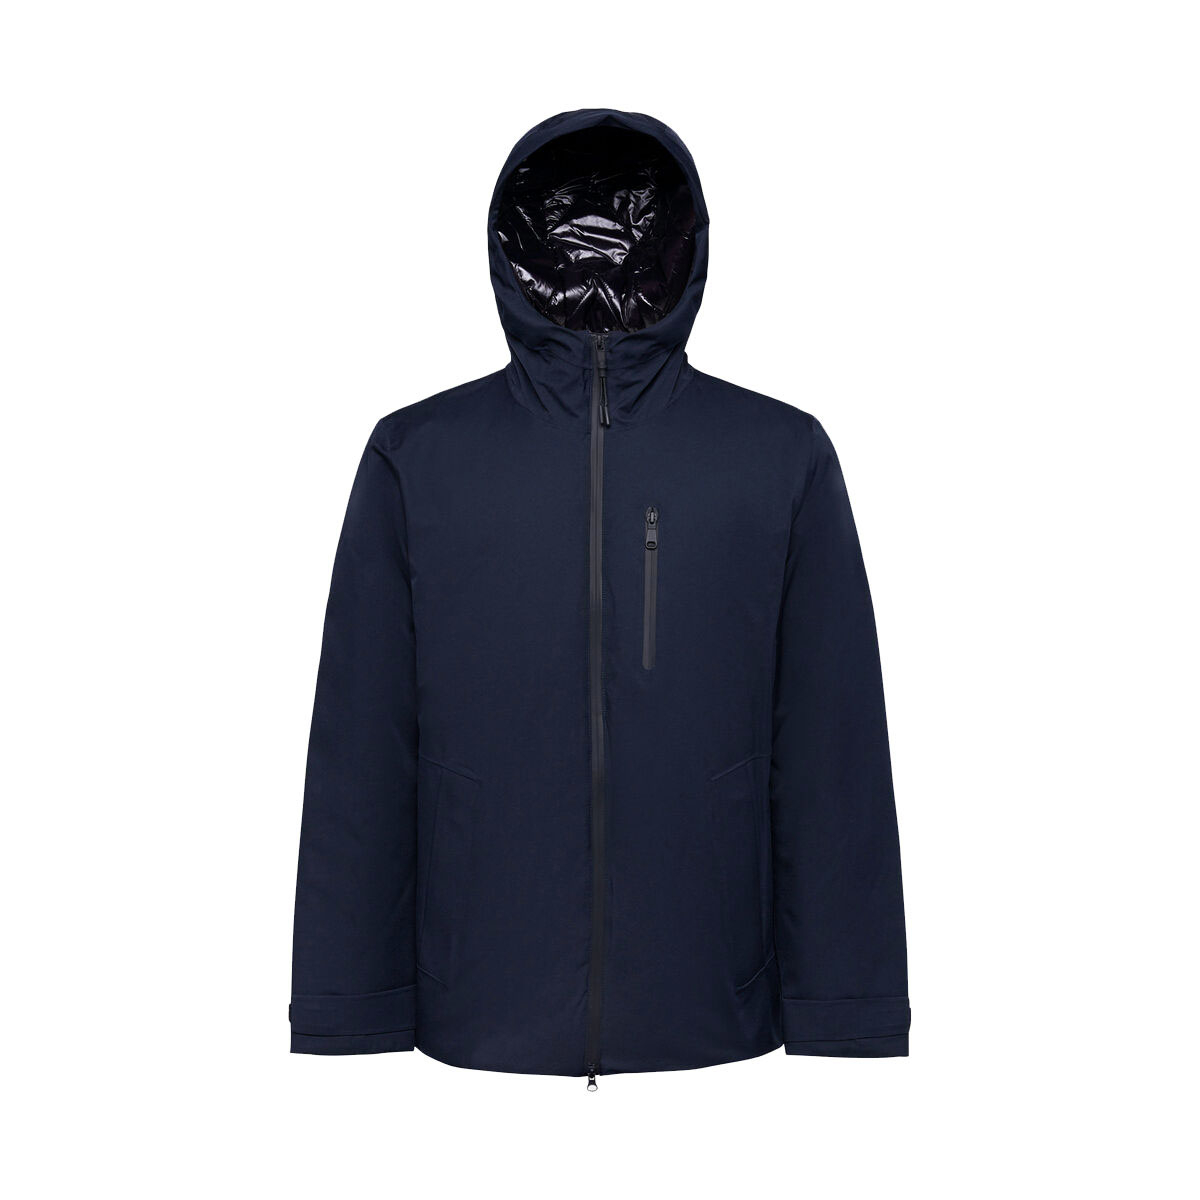 M Clintford parka